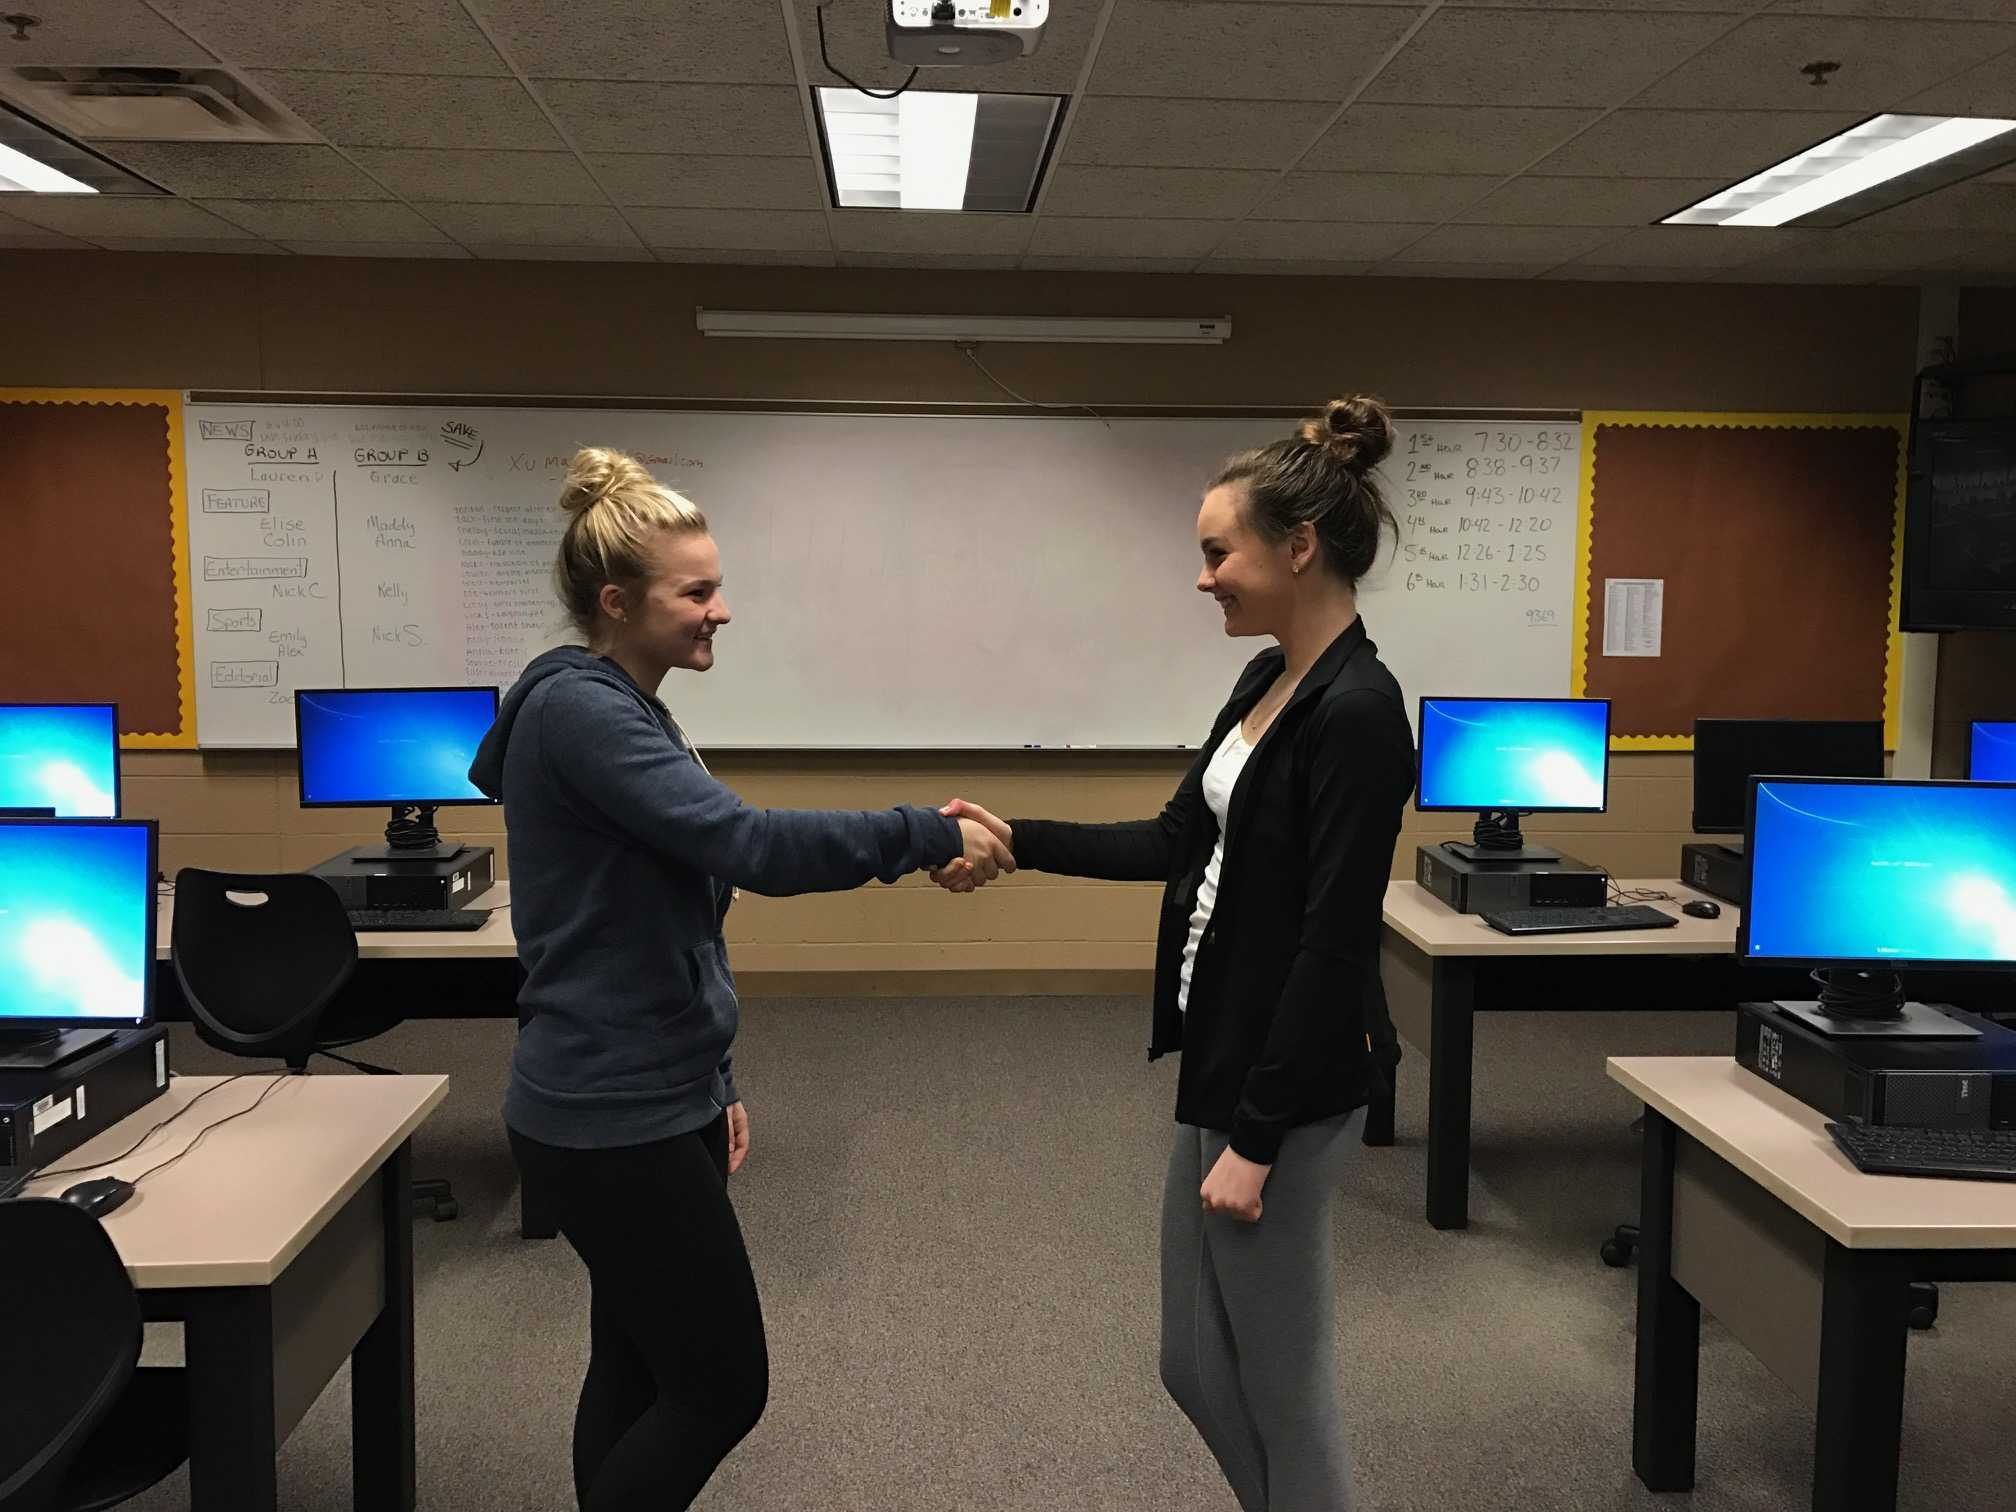 This display illustrates a peaceful exchange of power between two people with a different set of characteristics and beliefs. (Left to right: Maddy Fleury, Elise Delikat)